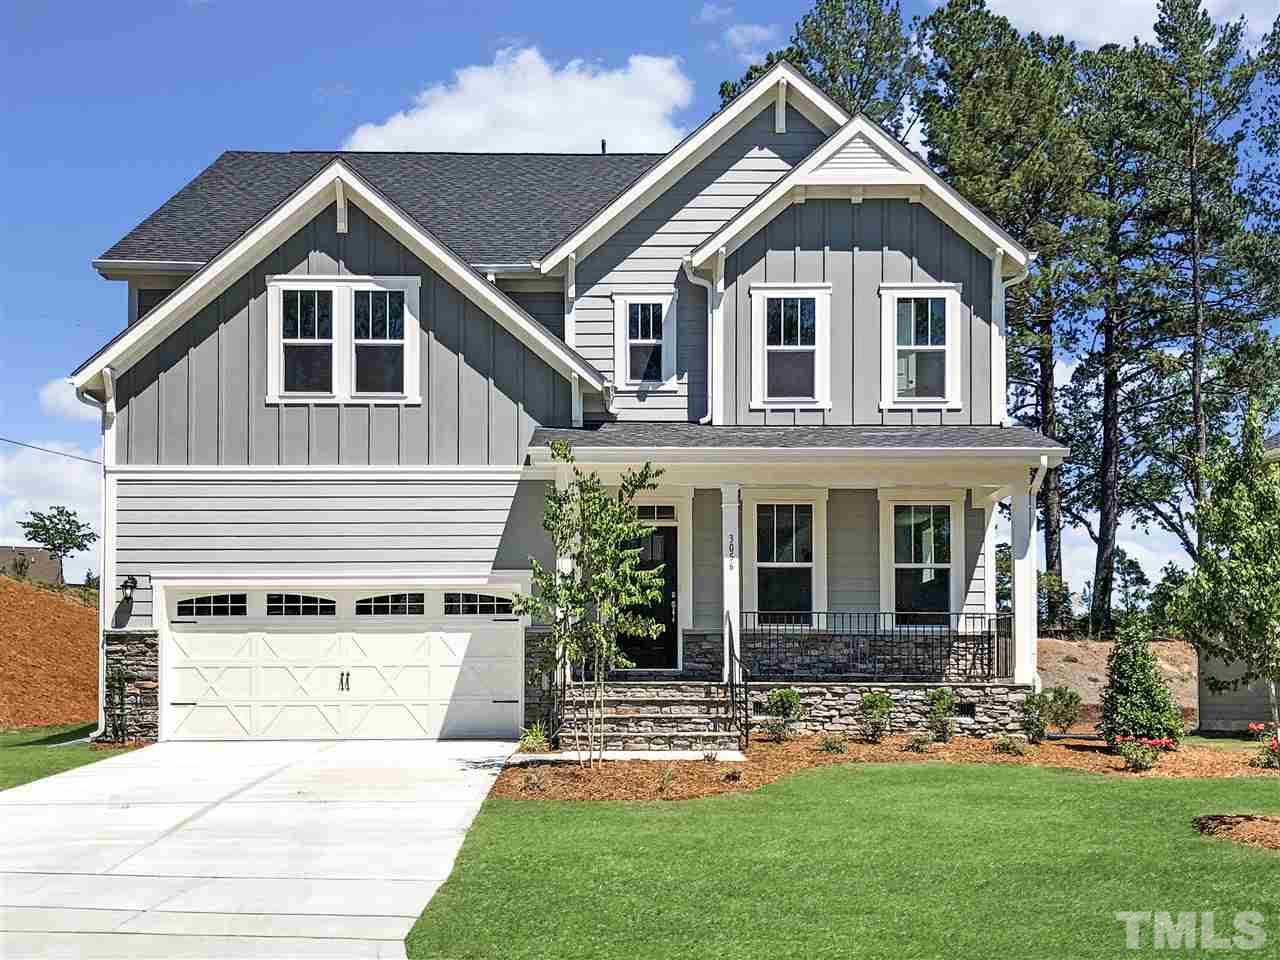 The Stratford- 5bdrms/4 baths Open floorplan with tons of natural light. Formal dining room plus breakfast nook that overlooks the deck. Gourmet kitchen loaded with upgrades including, gray cabinets, farm sink, gorgeous granite, backsplash and more! First floor guest suite. Spacious bonus room on second floor. LVP flooring throughout the first floor continues on the stairs!